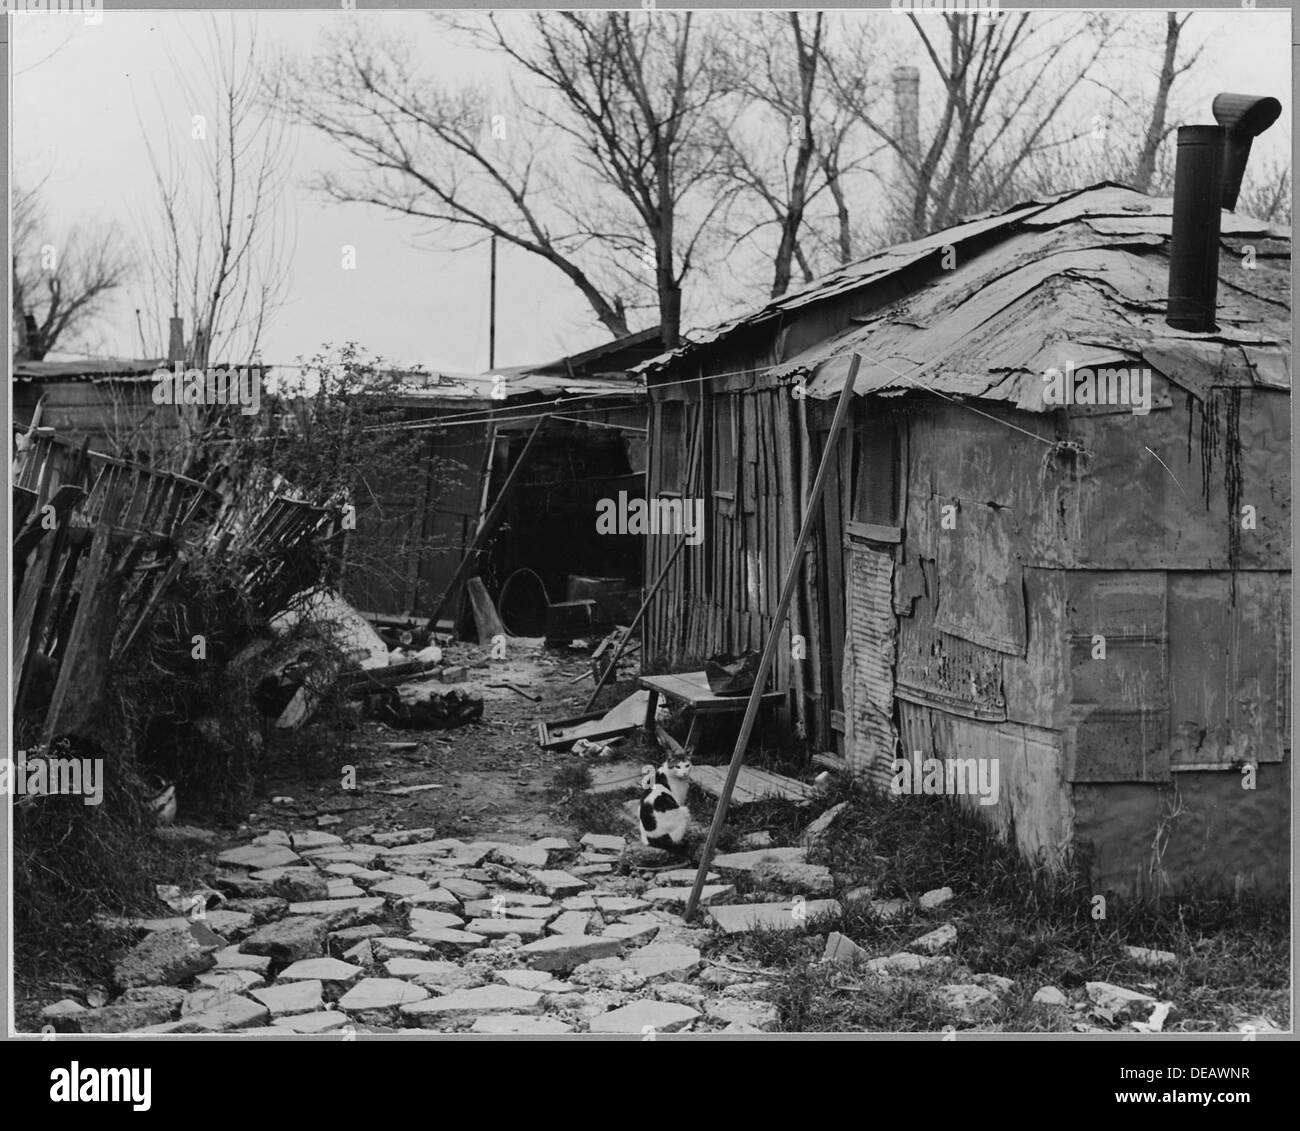 Sacramento, California. Home in Louis' Camp - shows effort toward neatness and order. 521729 - Stock Image